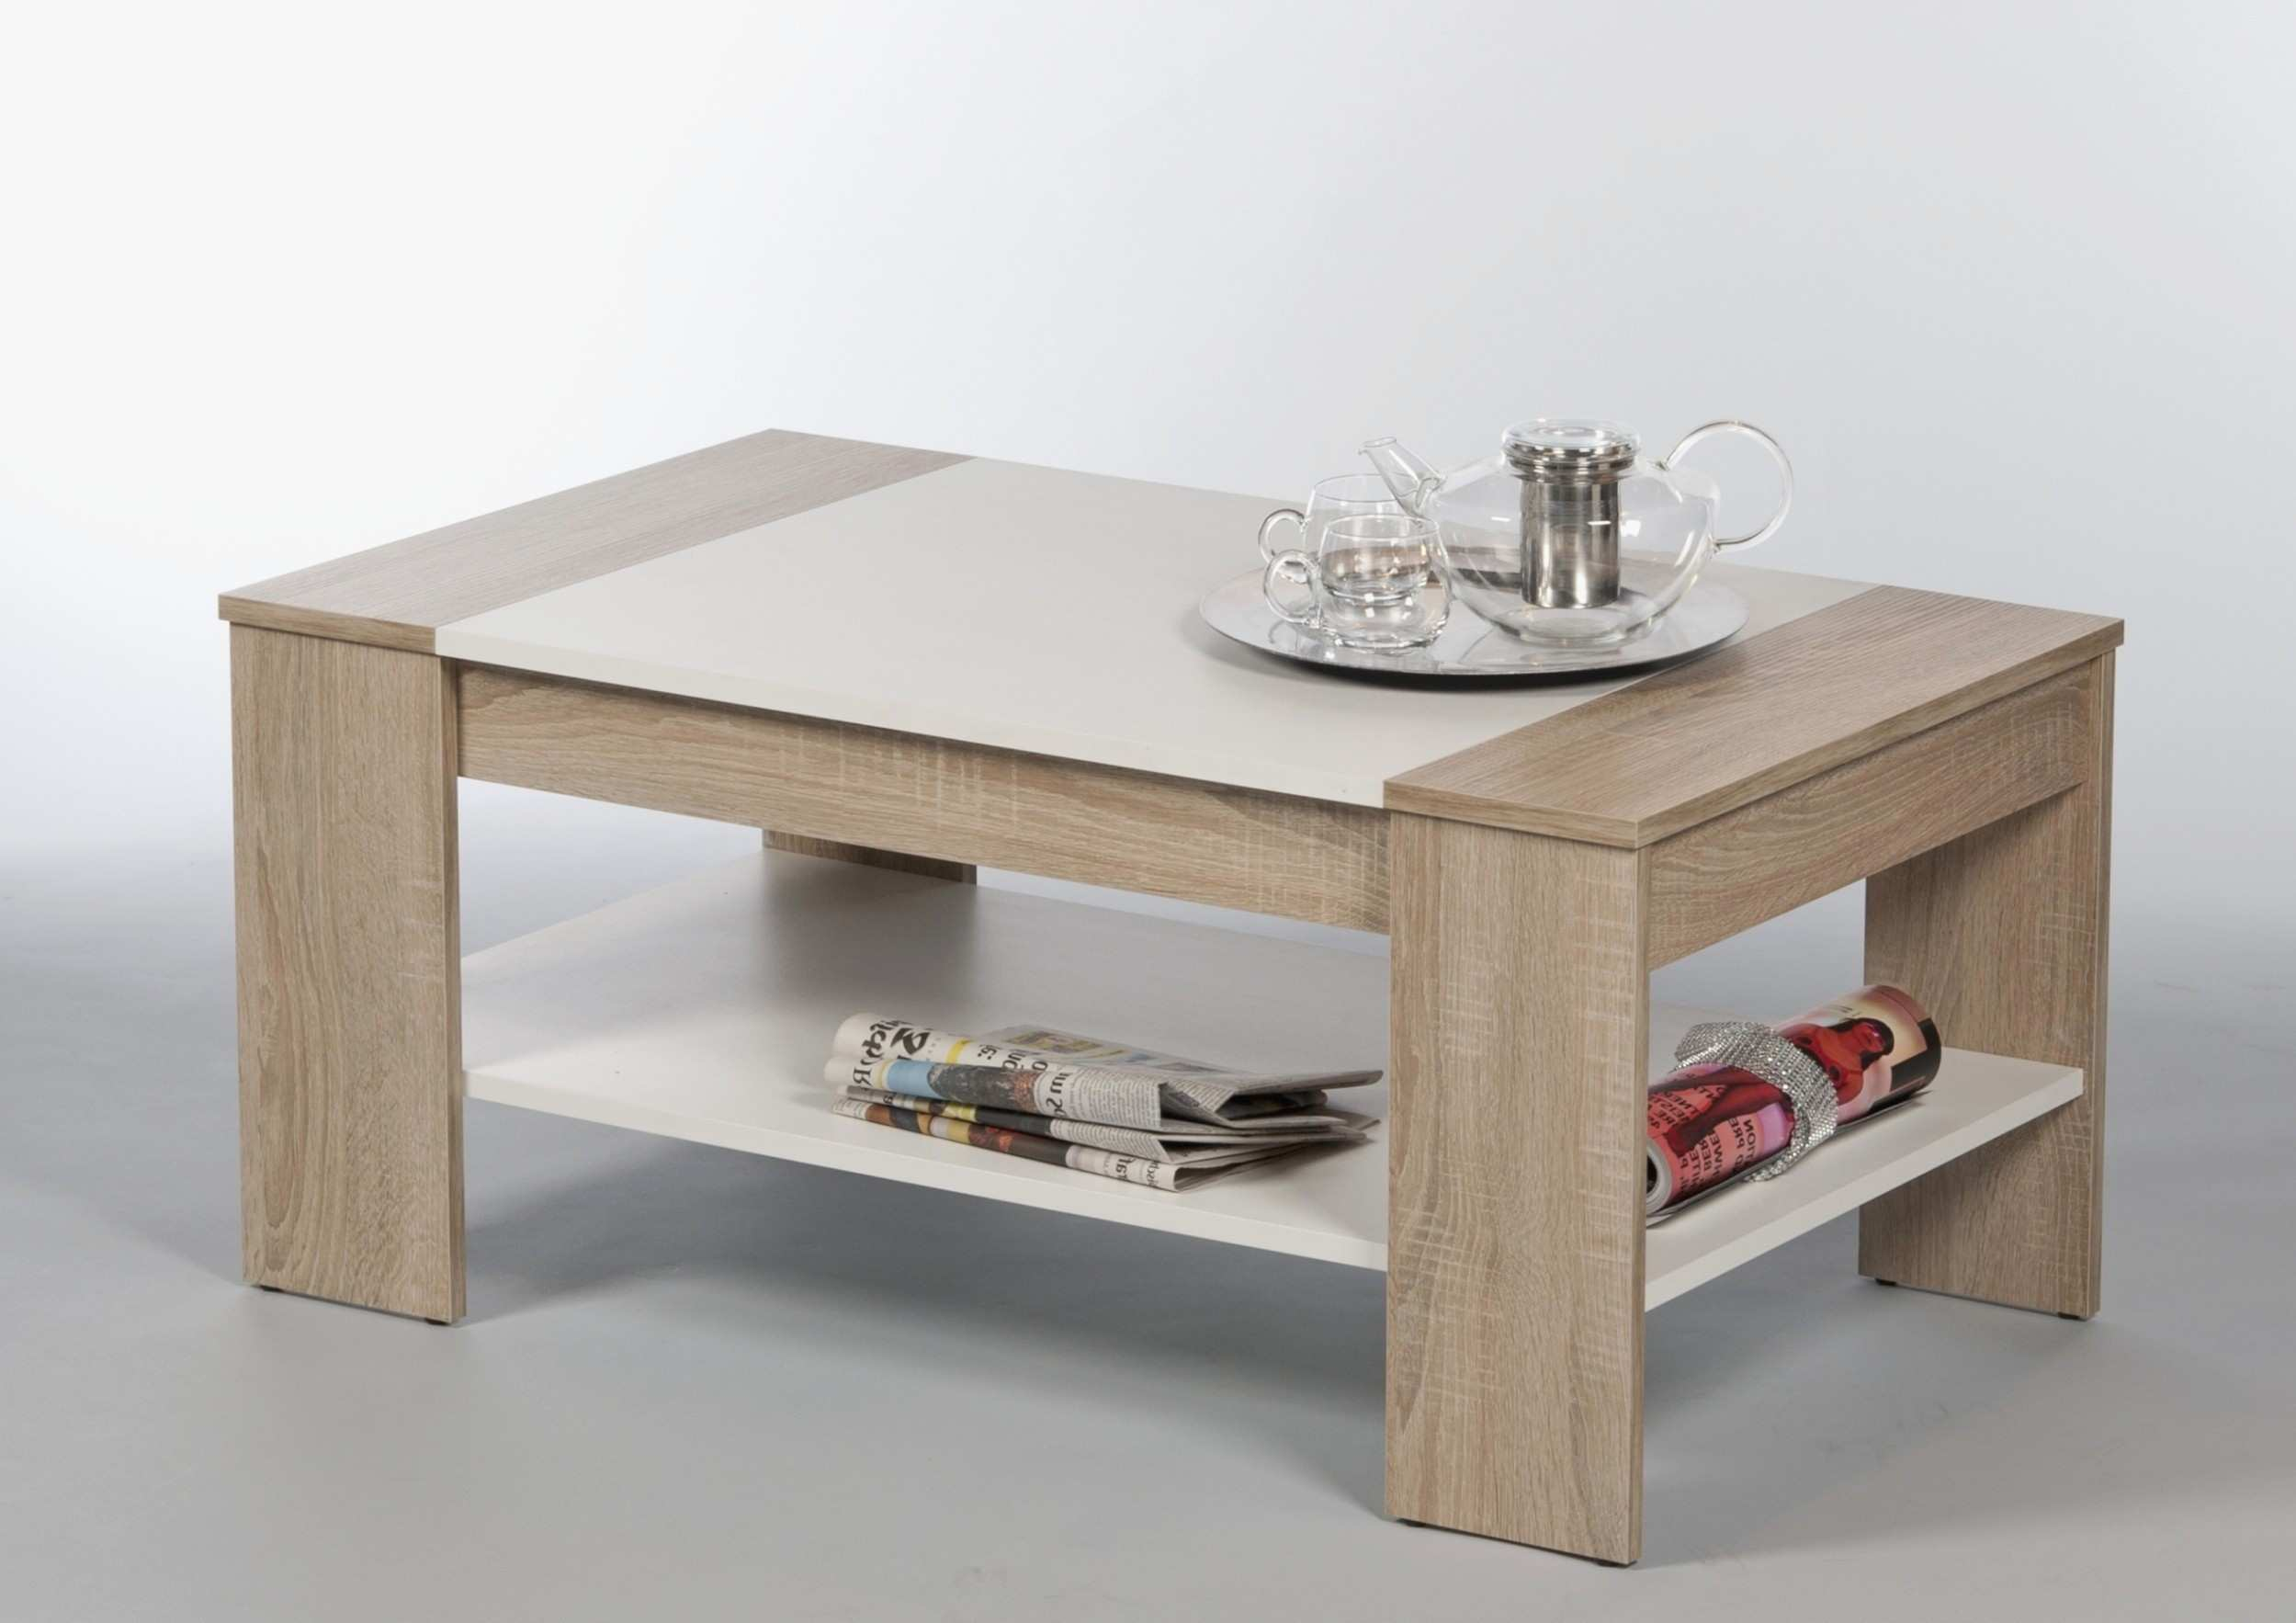 Wood Metal Coffee Table Home Decor Plus Lovely Kaffetisch